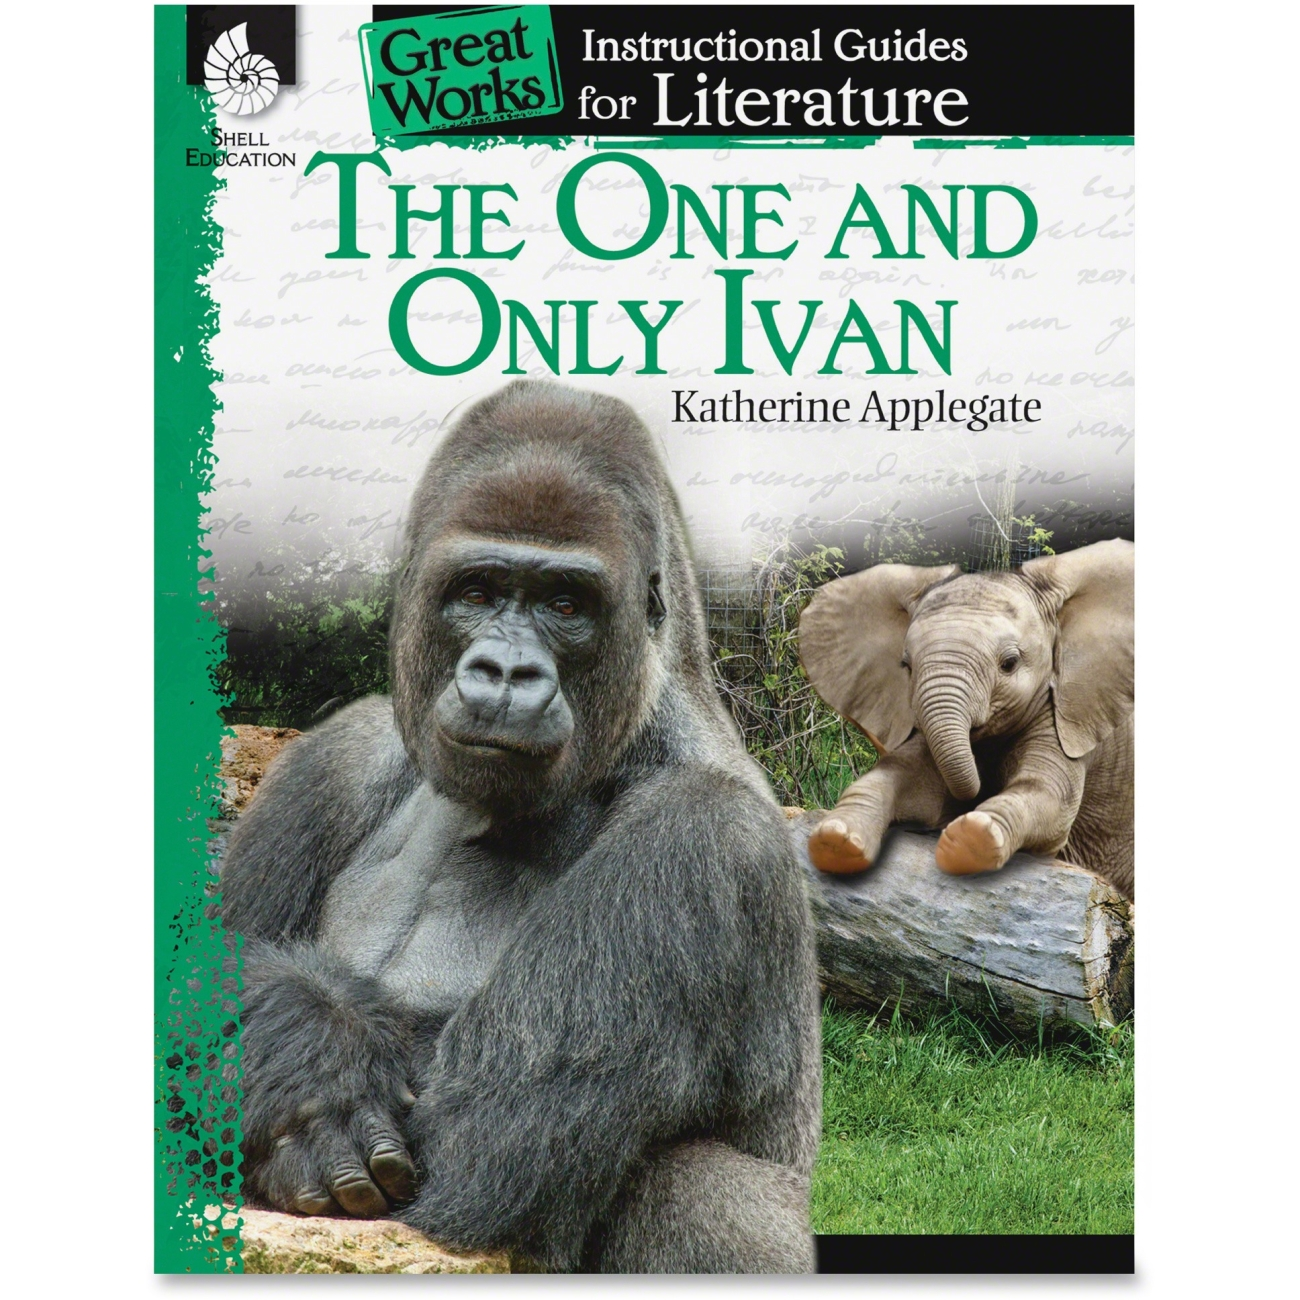 The one and only ivan an instructional guide for literature shell